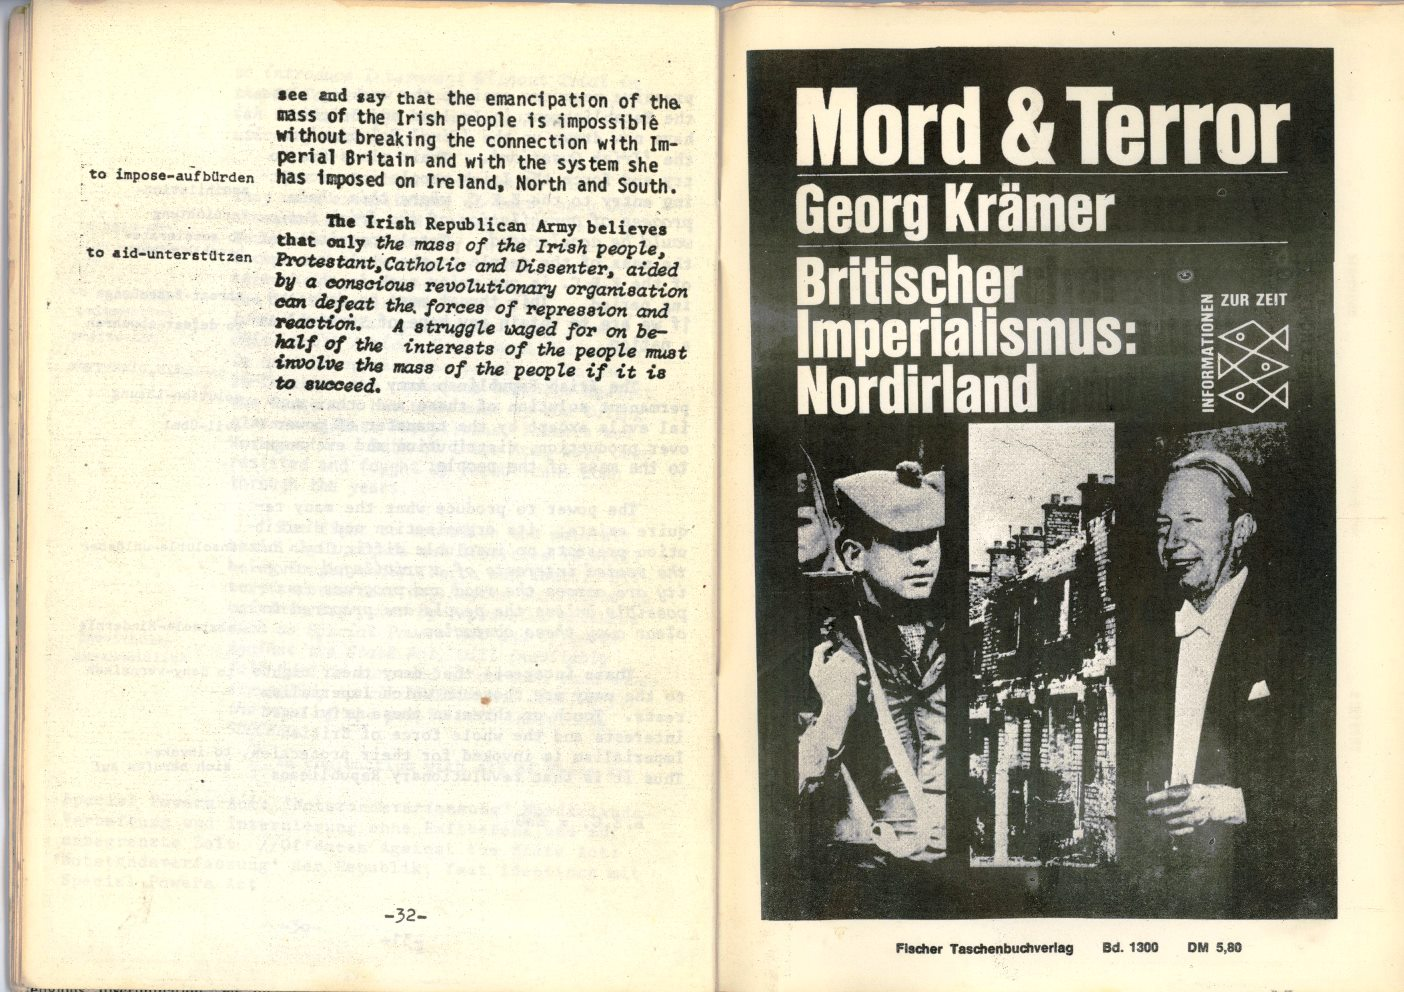 Berlin_Druckcooperative_1972_IRA_speaks_19